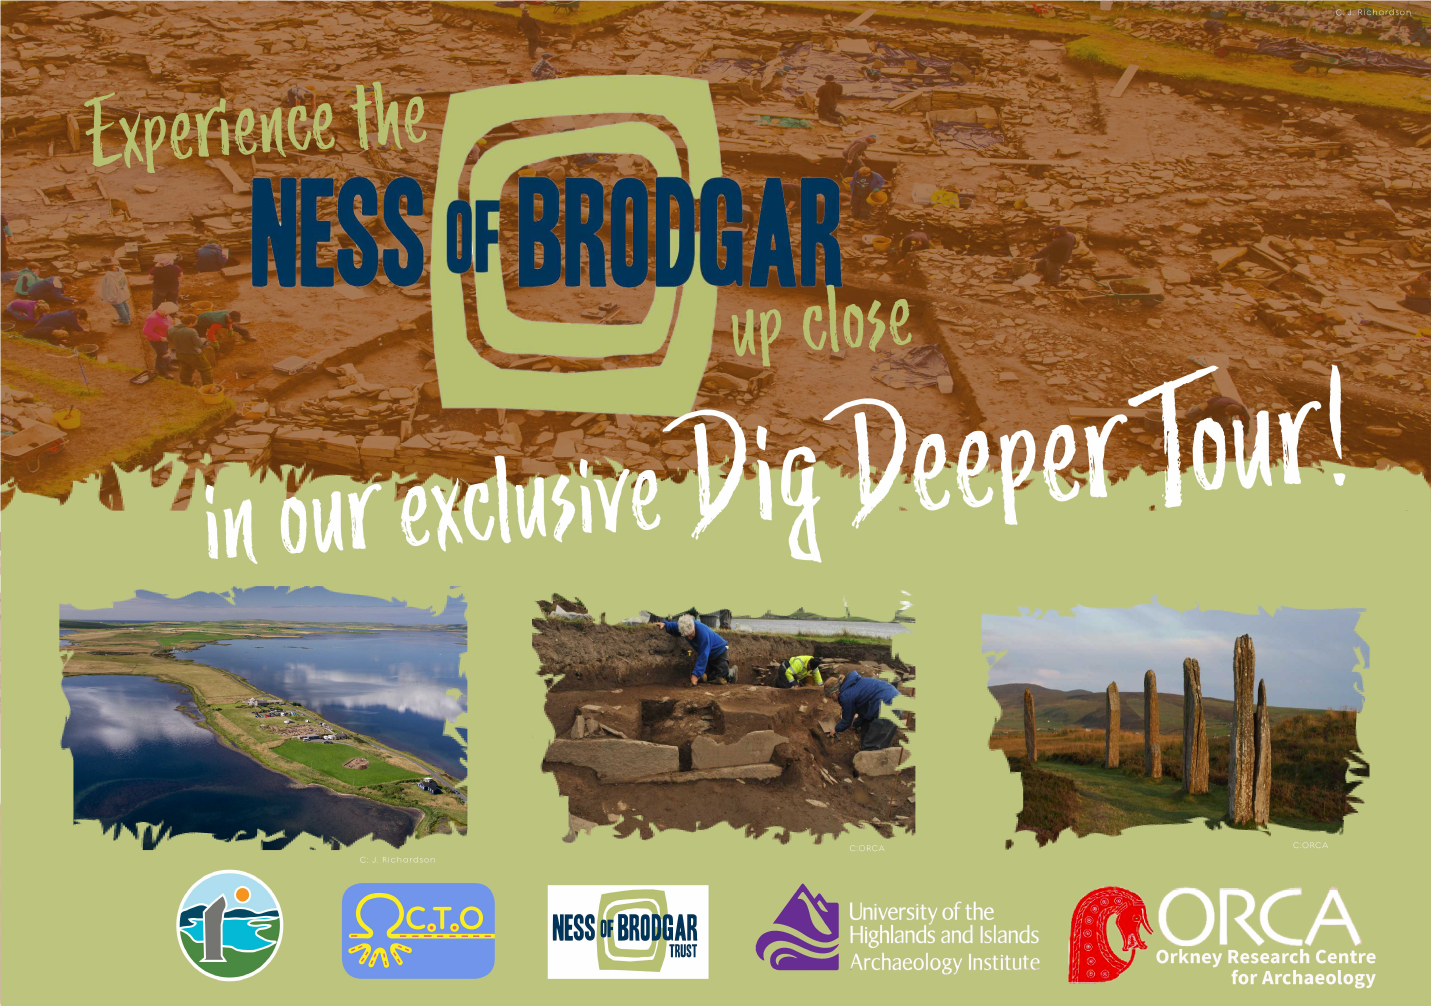 Ness of Brodgar Dig Deeper Tour graphic showing the dig site and the logos of ORCA, Ness of Brodgar Turst, UHI